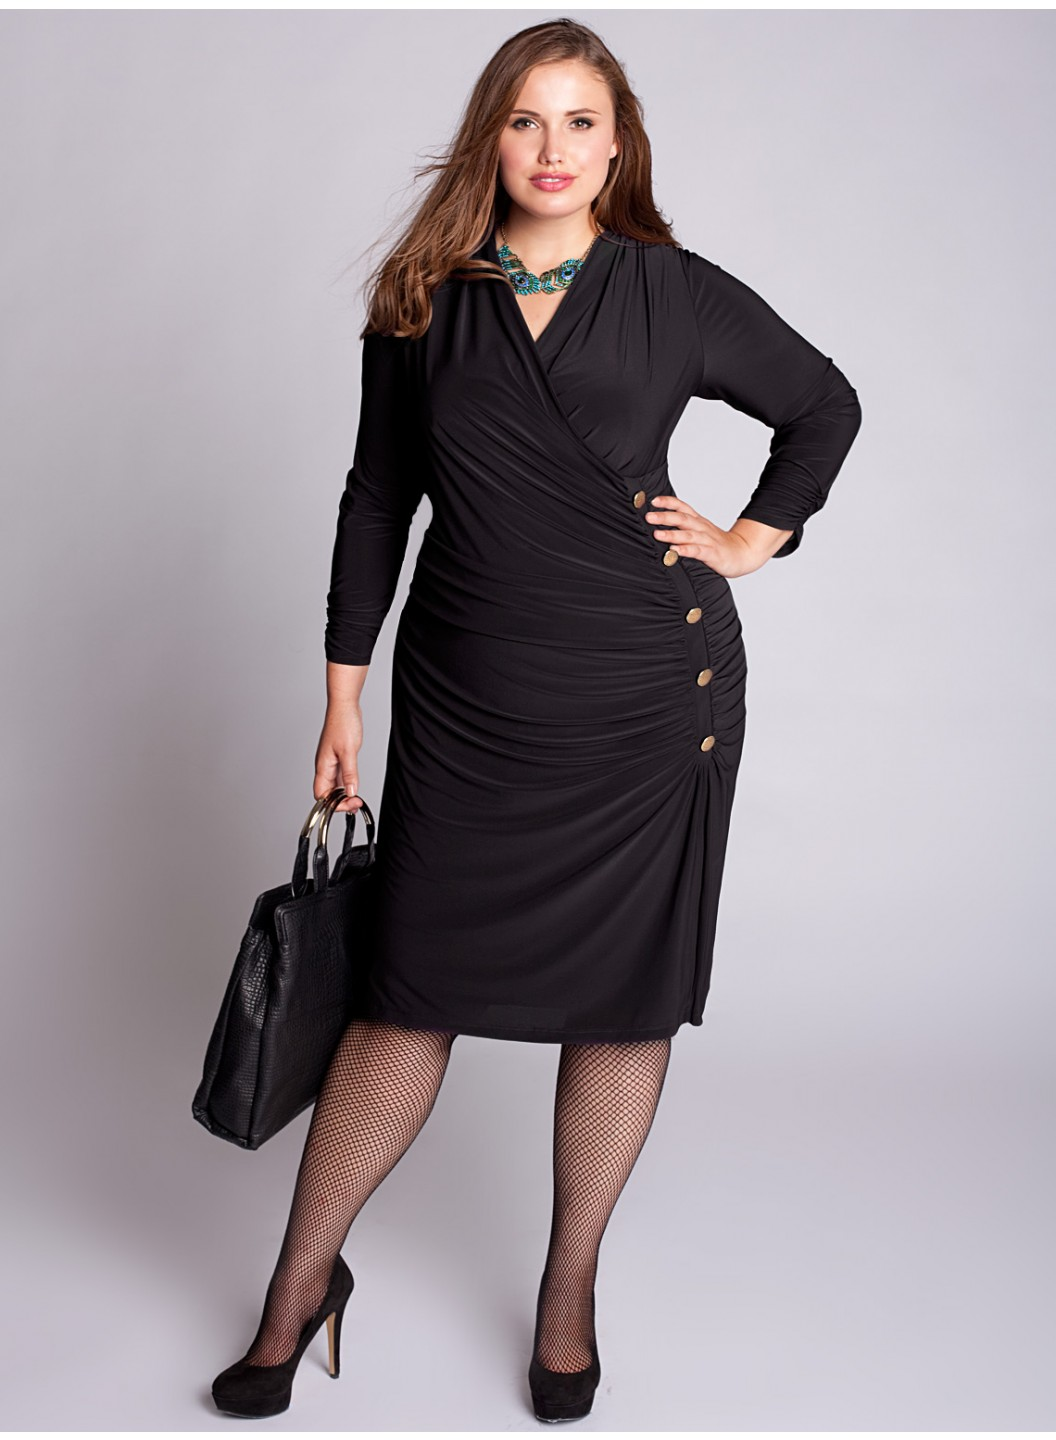 Plus Size Womens Dresses And Skirts 40